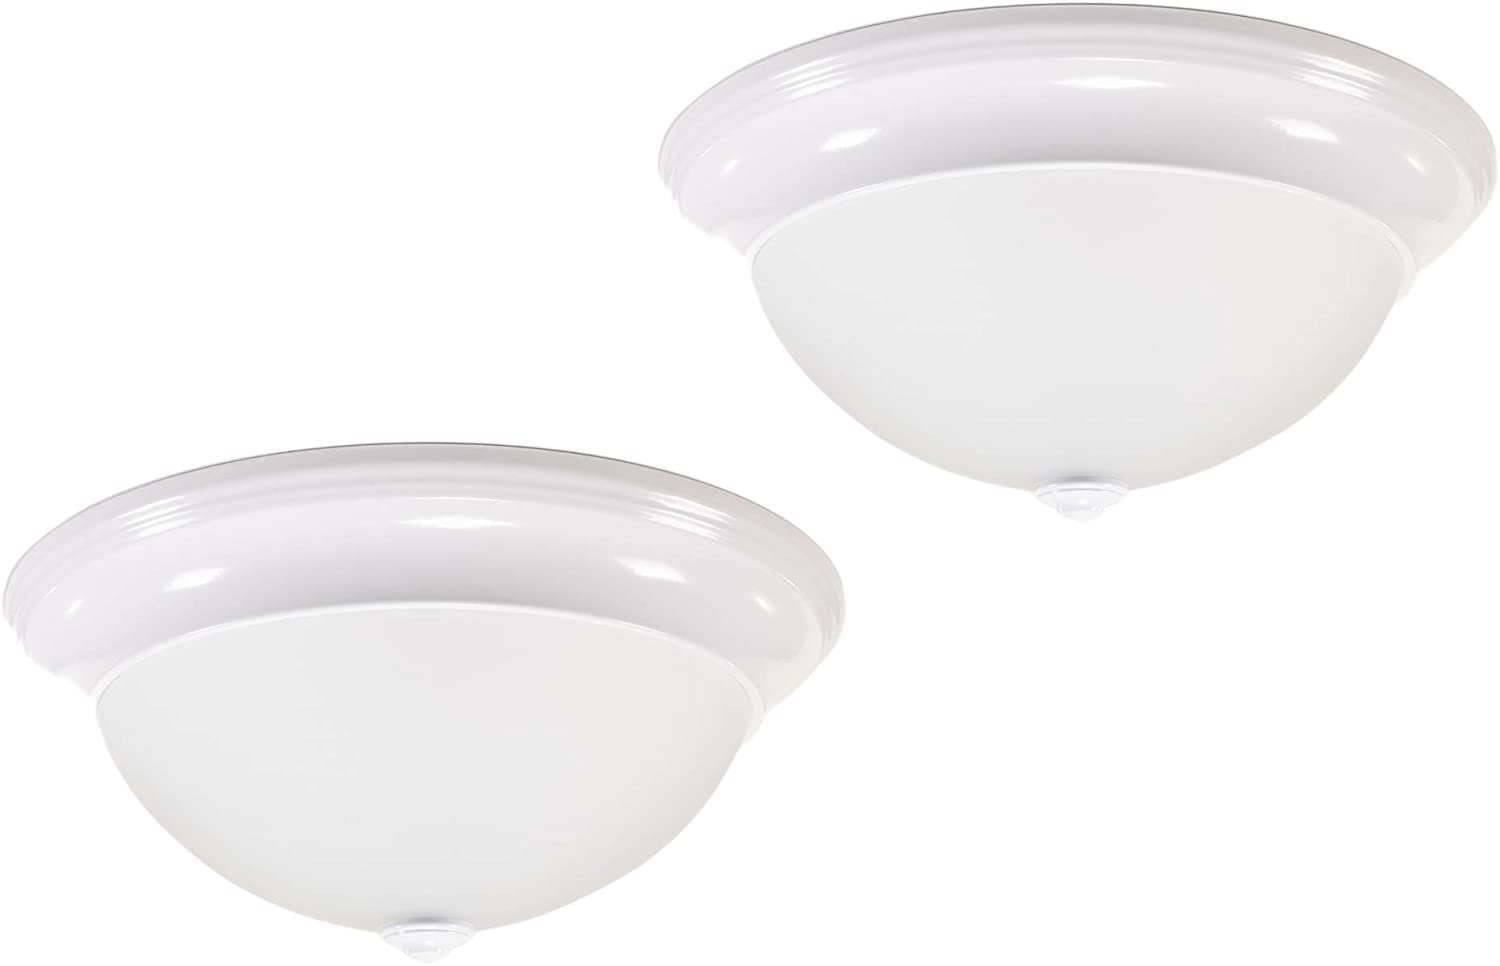 CORAMDEO 13 Inch LED Decorative Flush Mount Ceiling Fixture, Color Select Switch, Built in LED Gives 175W of Light from 26.4W of Power, 1850 Lumen, Dimmable, White Finish with Frosted Glass